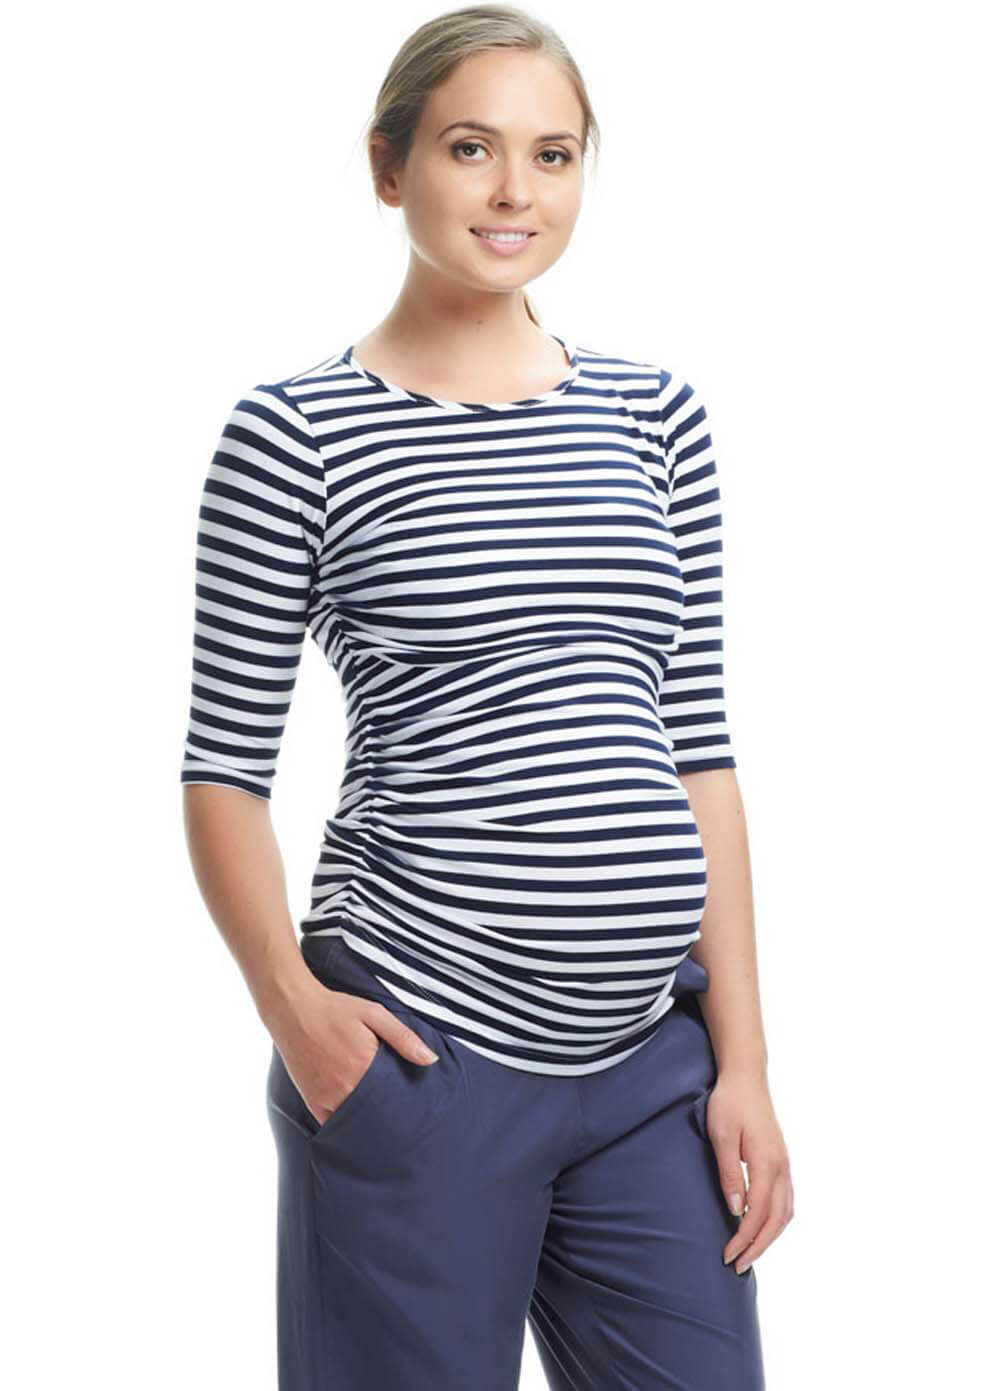 Queen Bee Honor 3/4 Sleeve Feeding Top in Navy Stripes by Soon Maternity